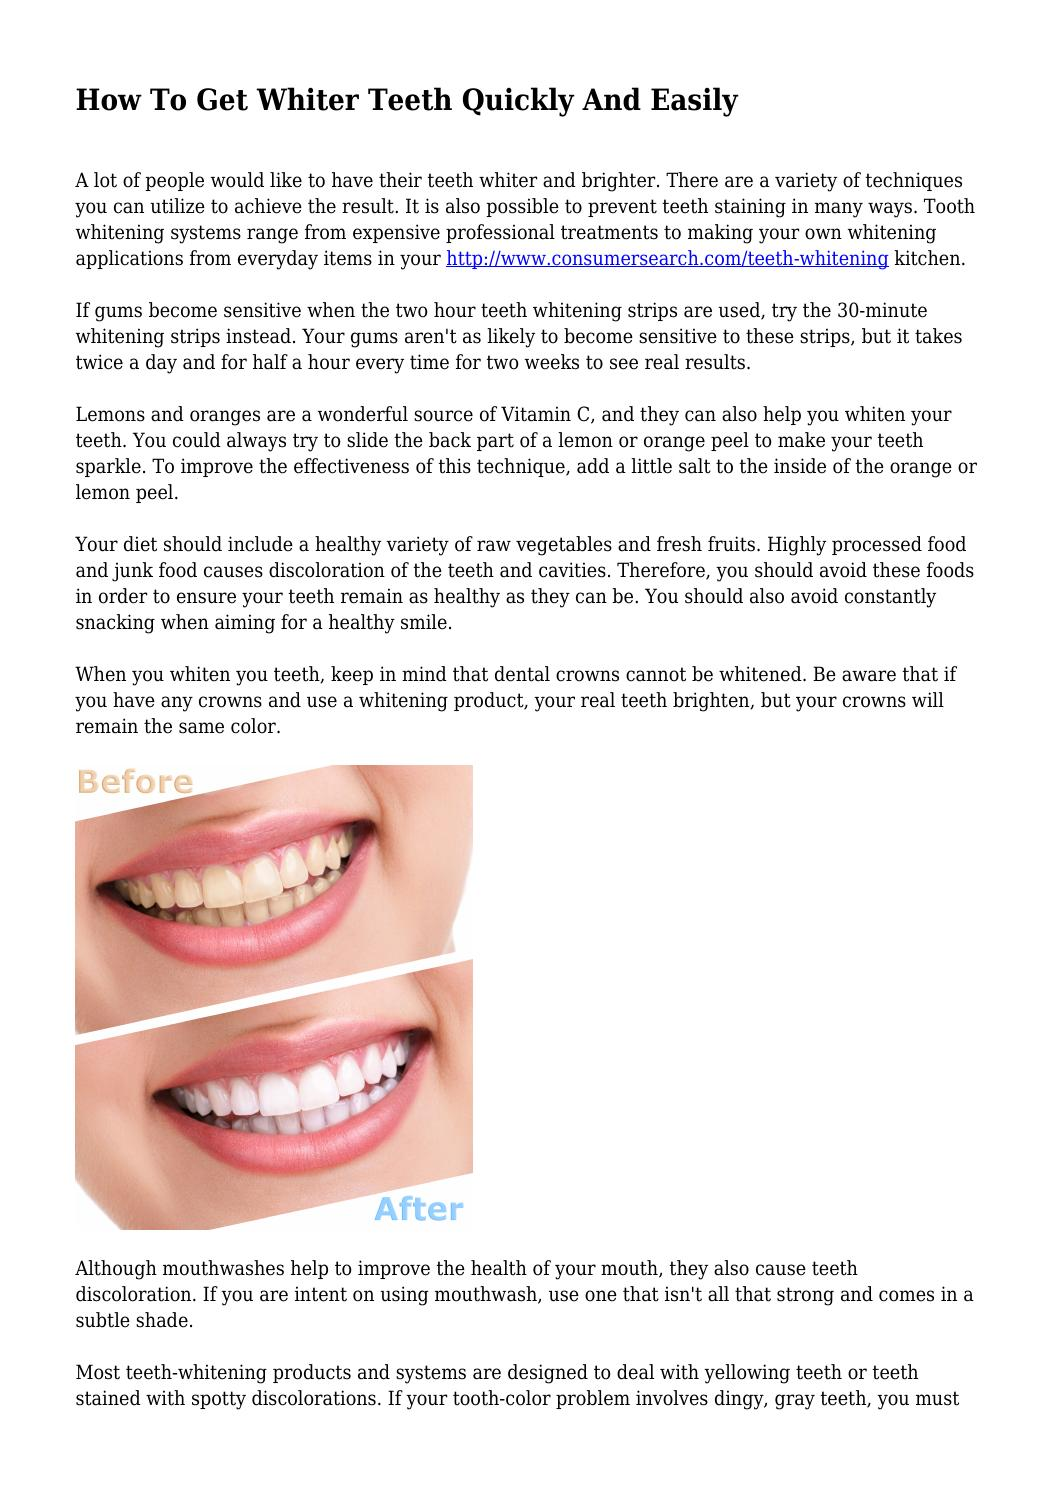 How To Get Whiter Teeth Quickly And Easily By Steadfastbough341